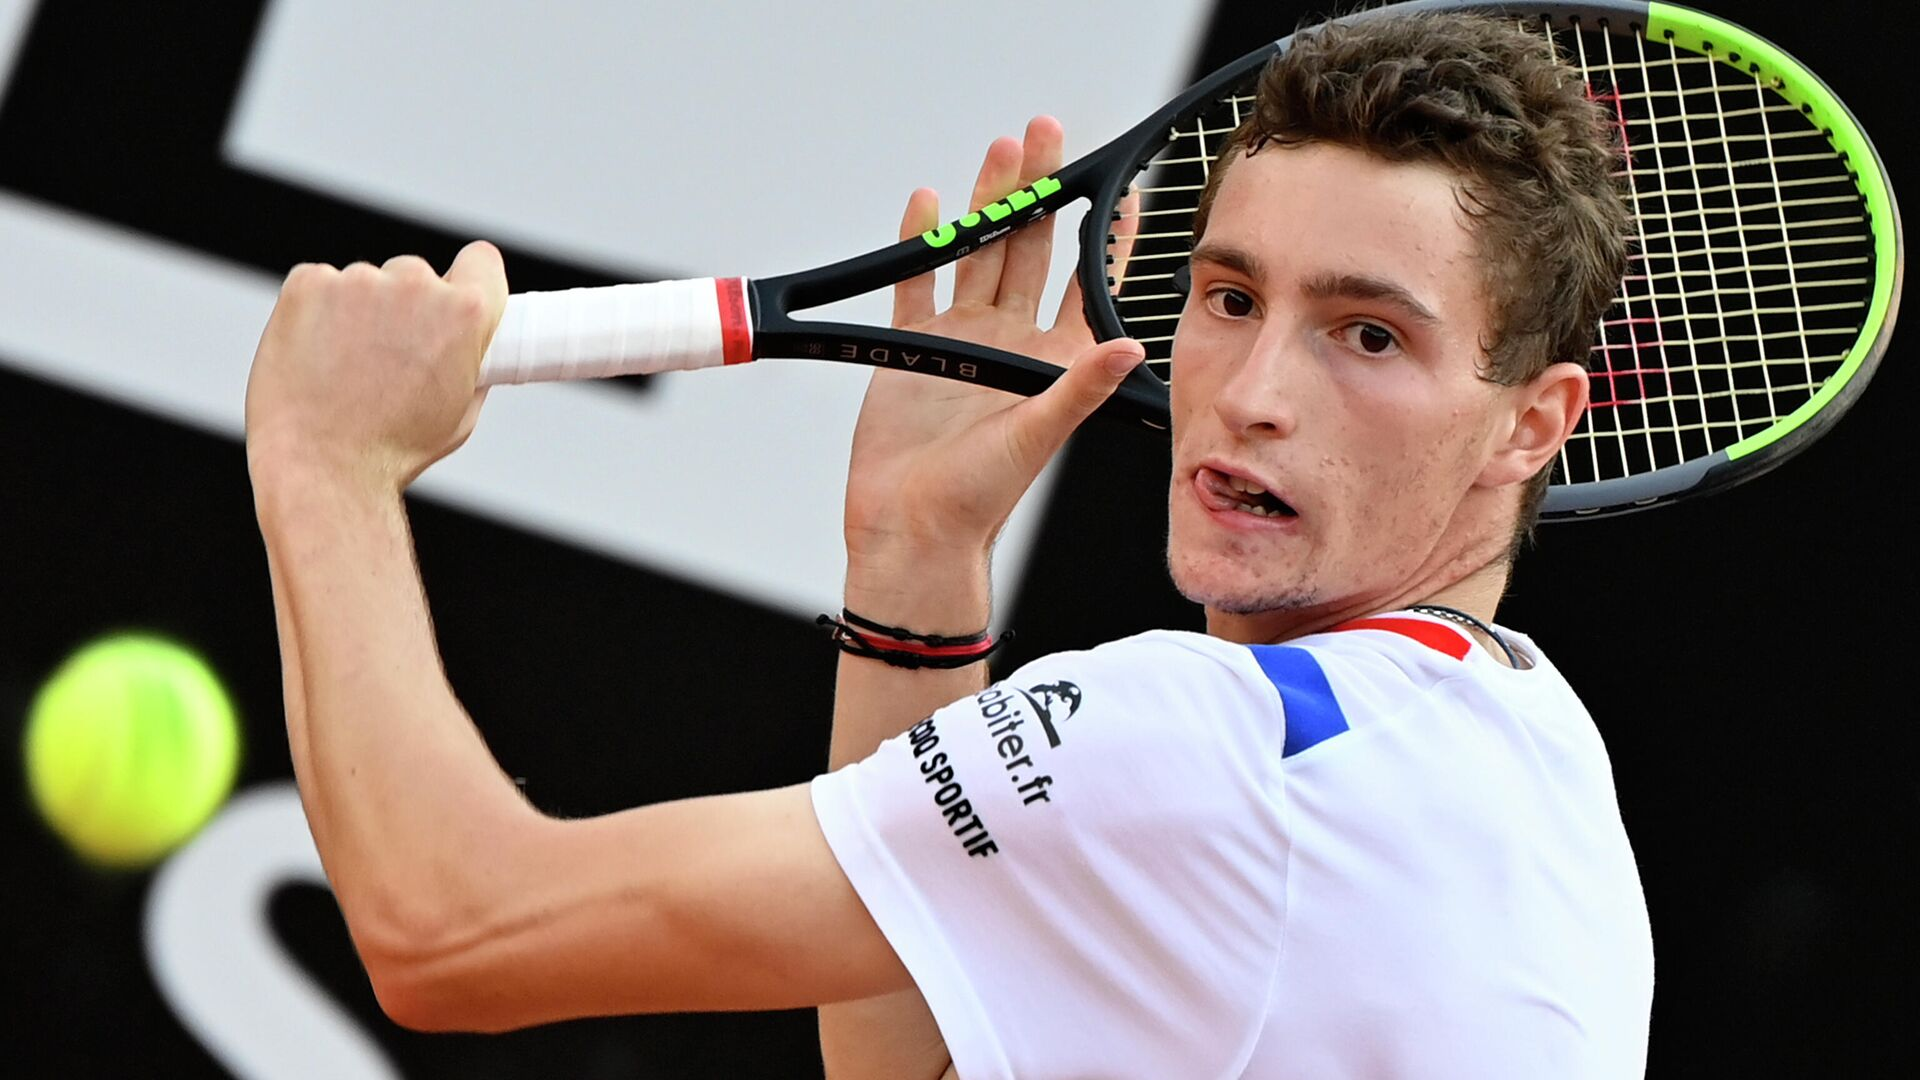 France's Ugo Humbert plays a backhand to Italy's Fabio Fognini on day four of the Men's Italian Open at Foro Italico on September 17, 2020 in Rome, Italy. (Photo by Riccardo Antimiani / POOL / AFP) - РИА Новости, 1920, 24.10.2020